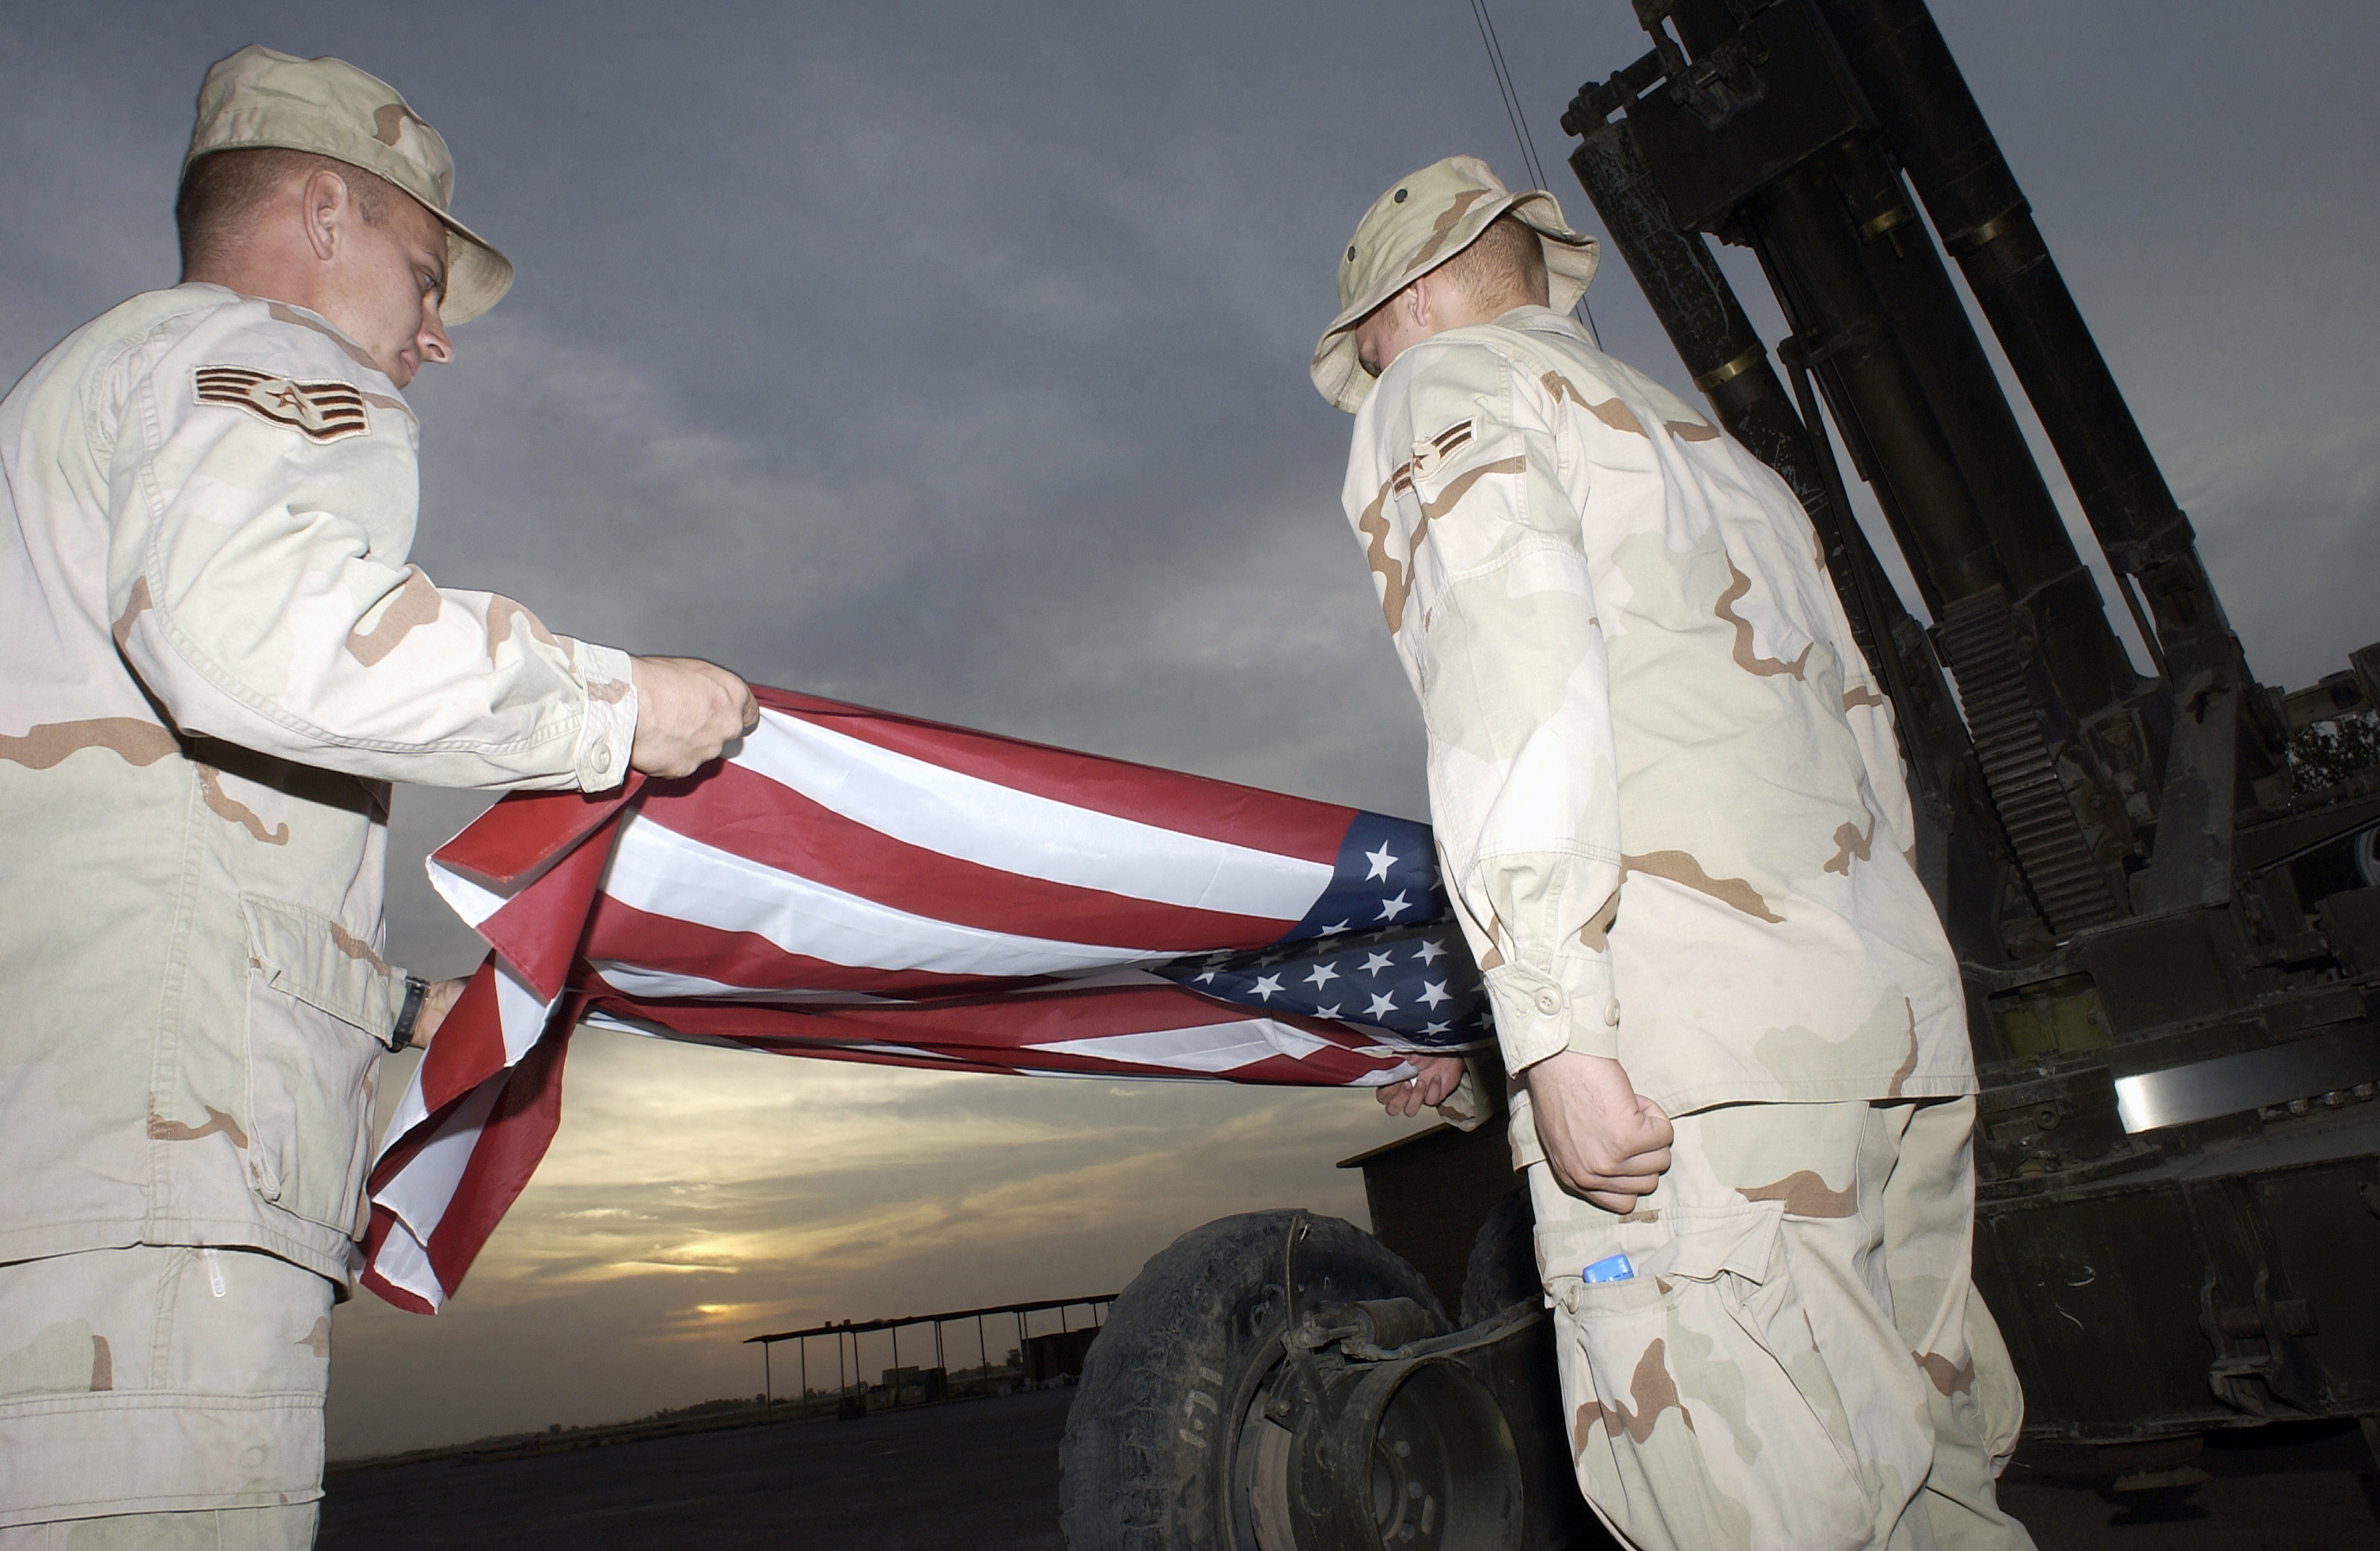 Left to right, US Air Force (USAF) STAFF Sergeant (SSGT) Charles Clawson, AIRMAN First Class (A1C) Jeffrey Wyatt, and A1C Danie Ormsby from the 506th Expeditionary Civil Engineering Squadron (ECES), Fire Department, recover the flag as sunset near at Kirkuk Air Base (AB), Iraq (IRQ), during Operation IRAQI FREEDOM